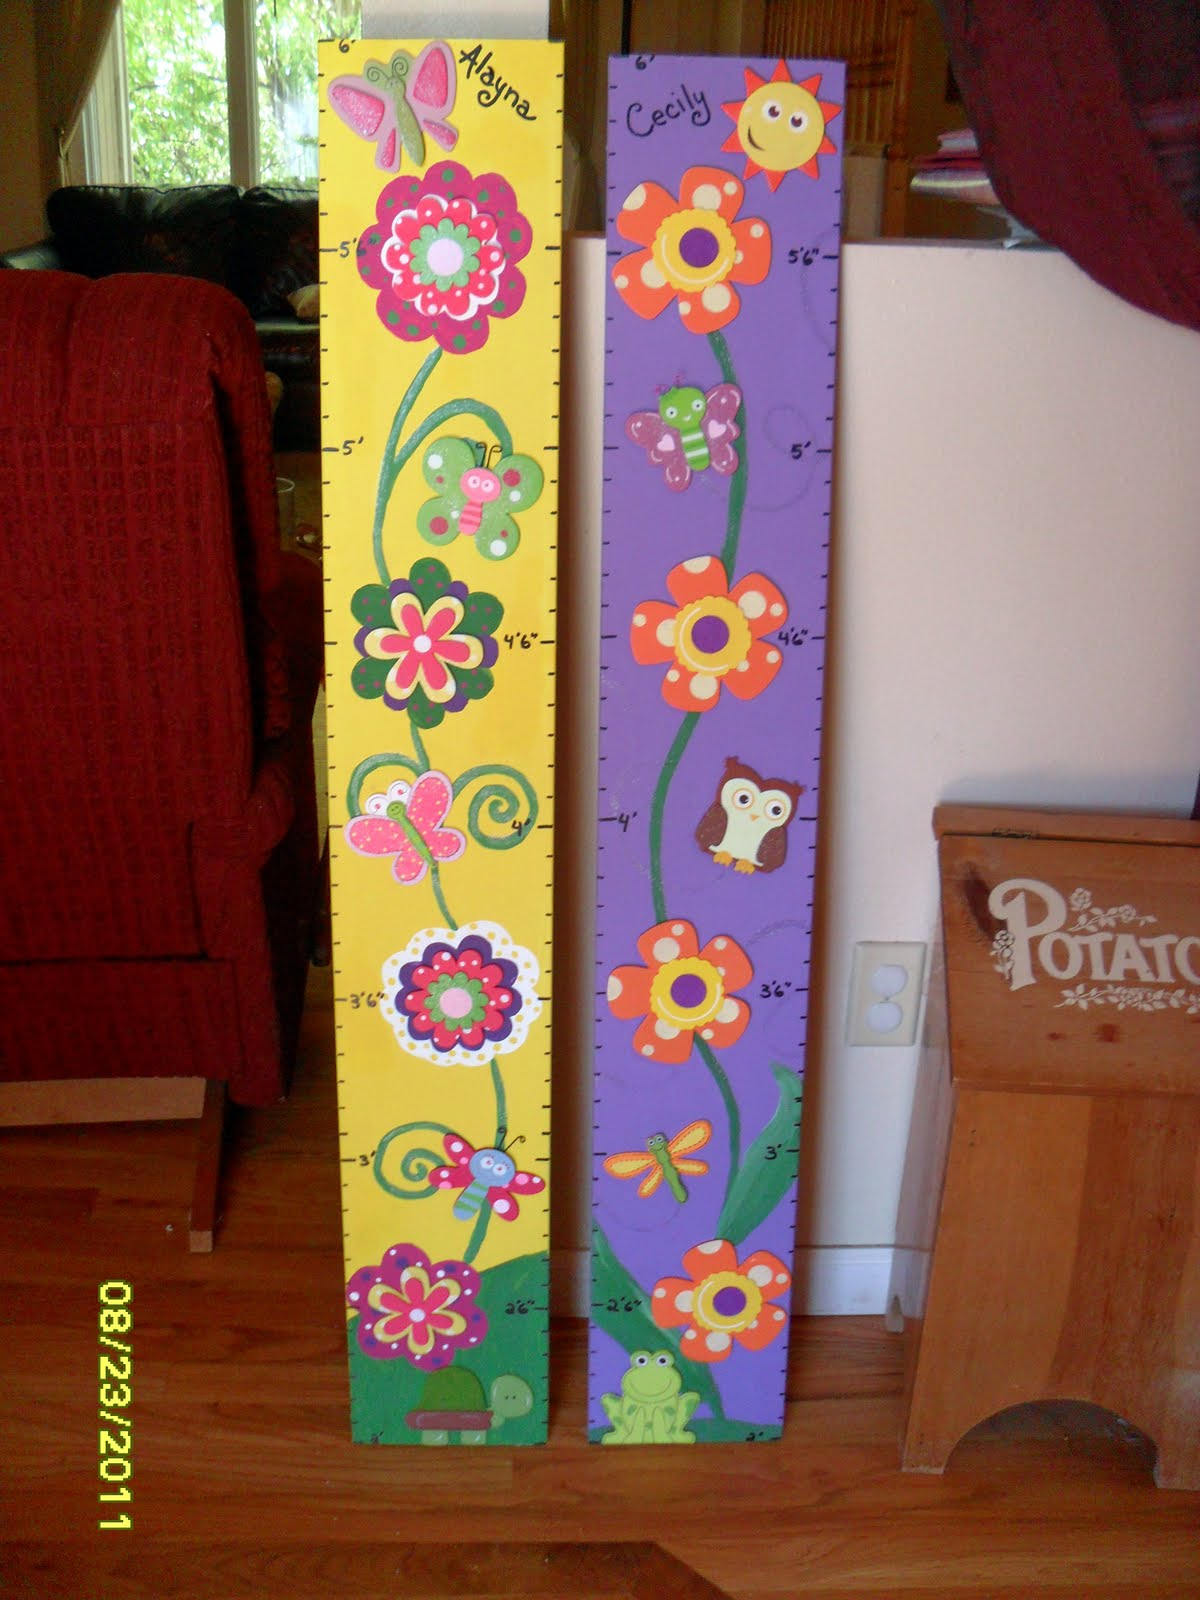 The mellin patch homemade wooden growth charts homemade wooden growth charts geenschuldenfo Images